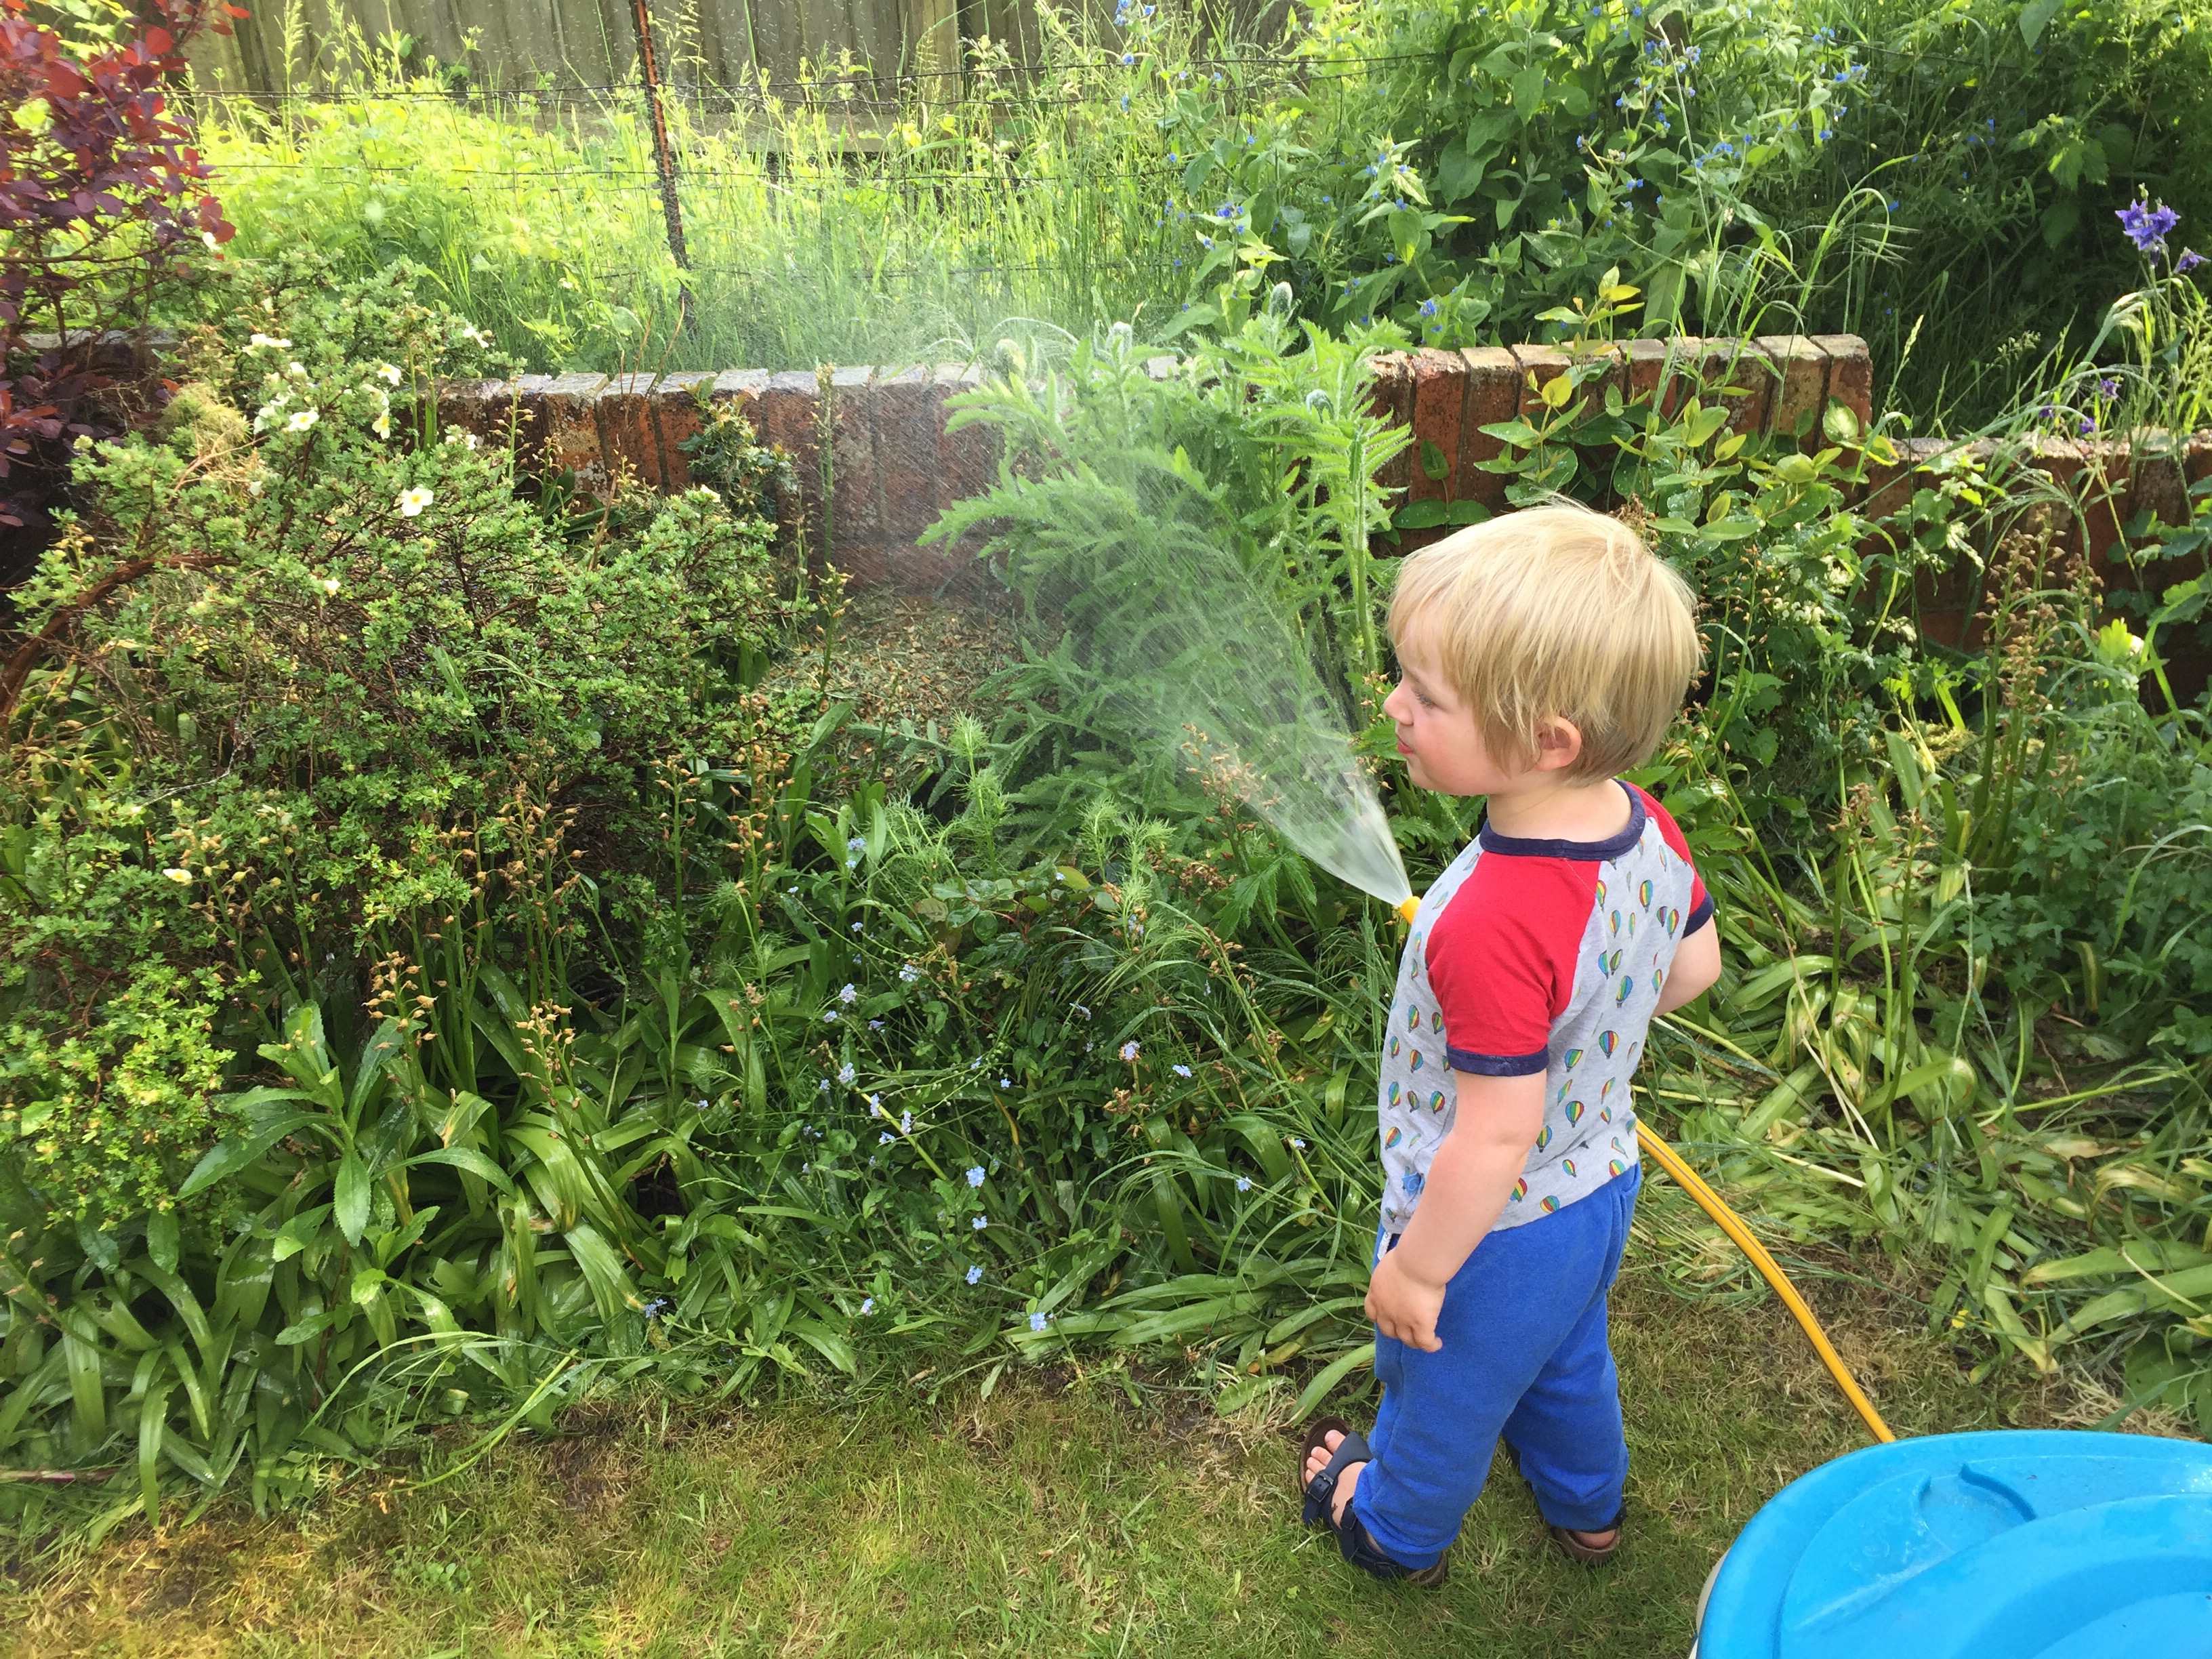 Noah doing his bit to keep the garden green.